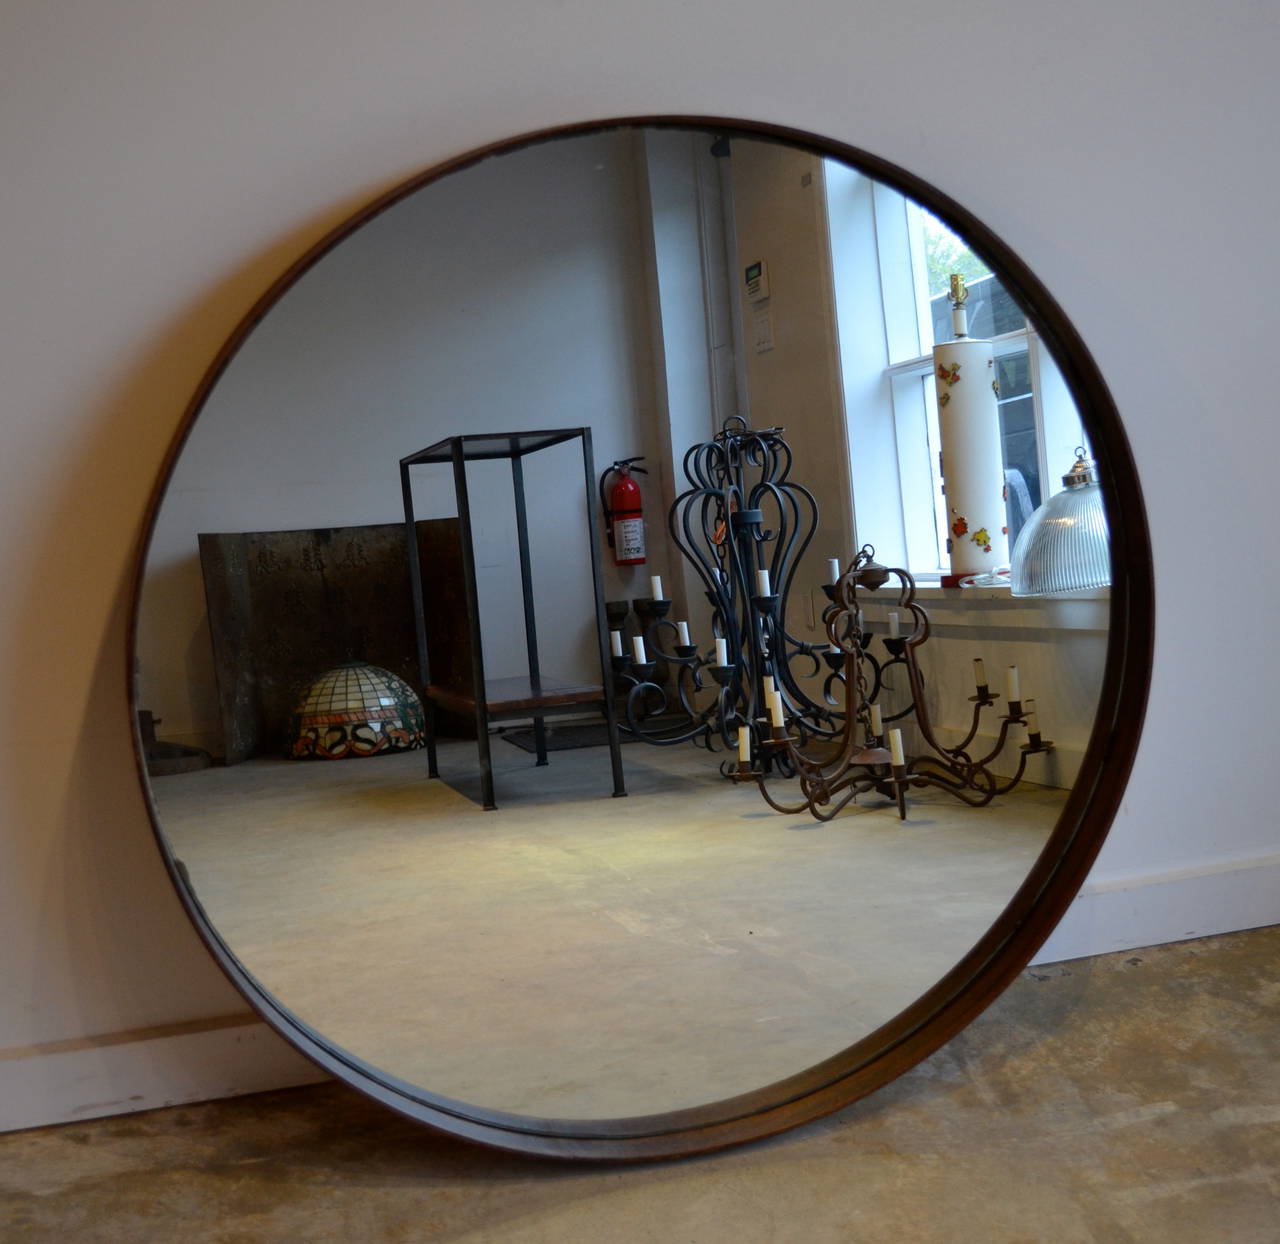 2020 Industrial Round Metal Band Mirror Throughout Round Metal Wall Mirrors (View 19 of 20)